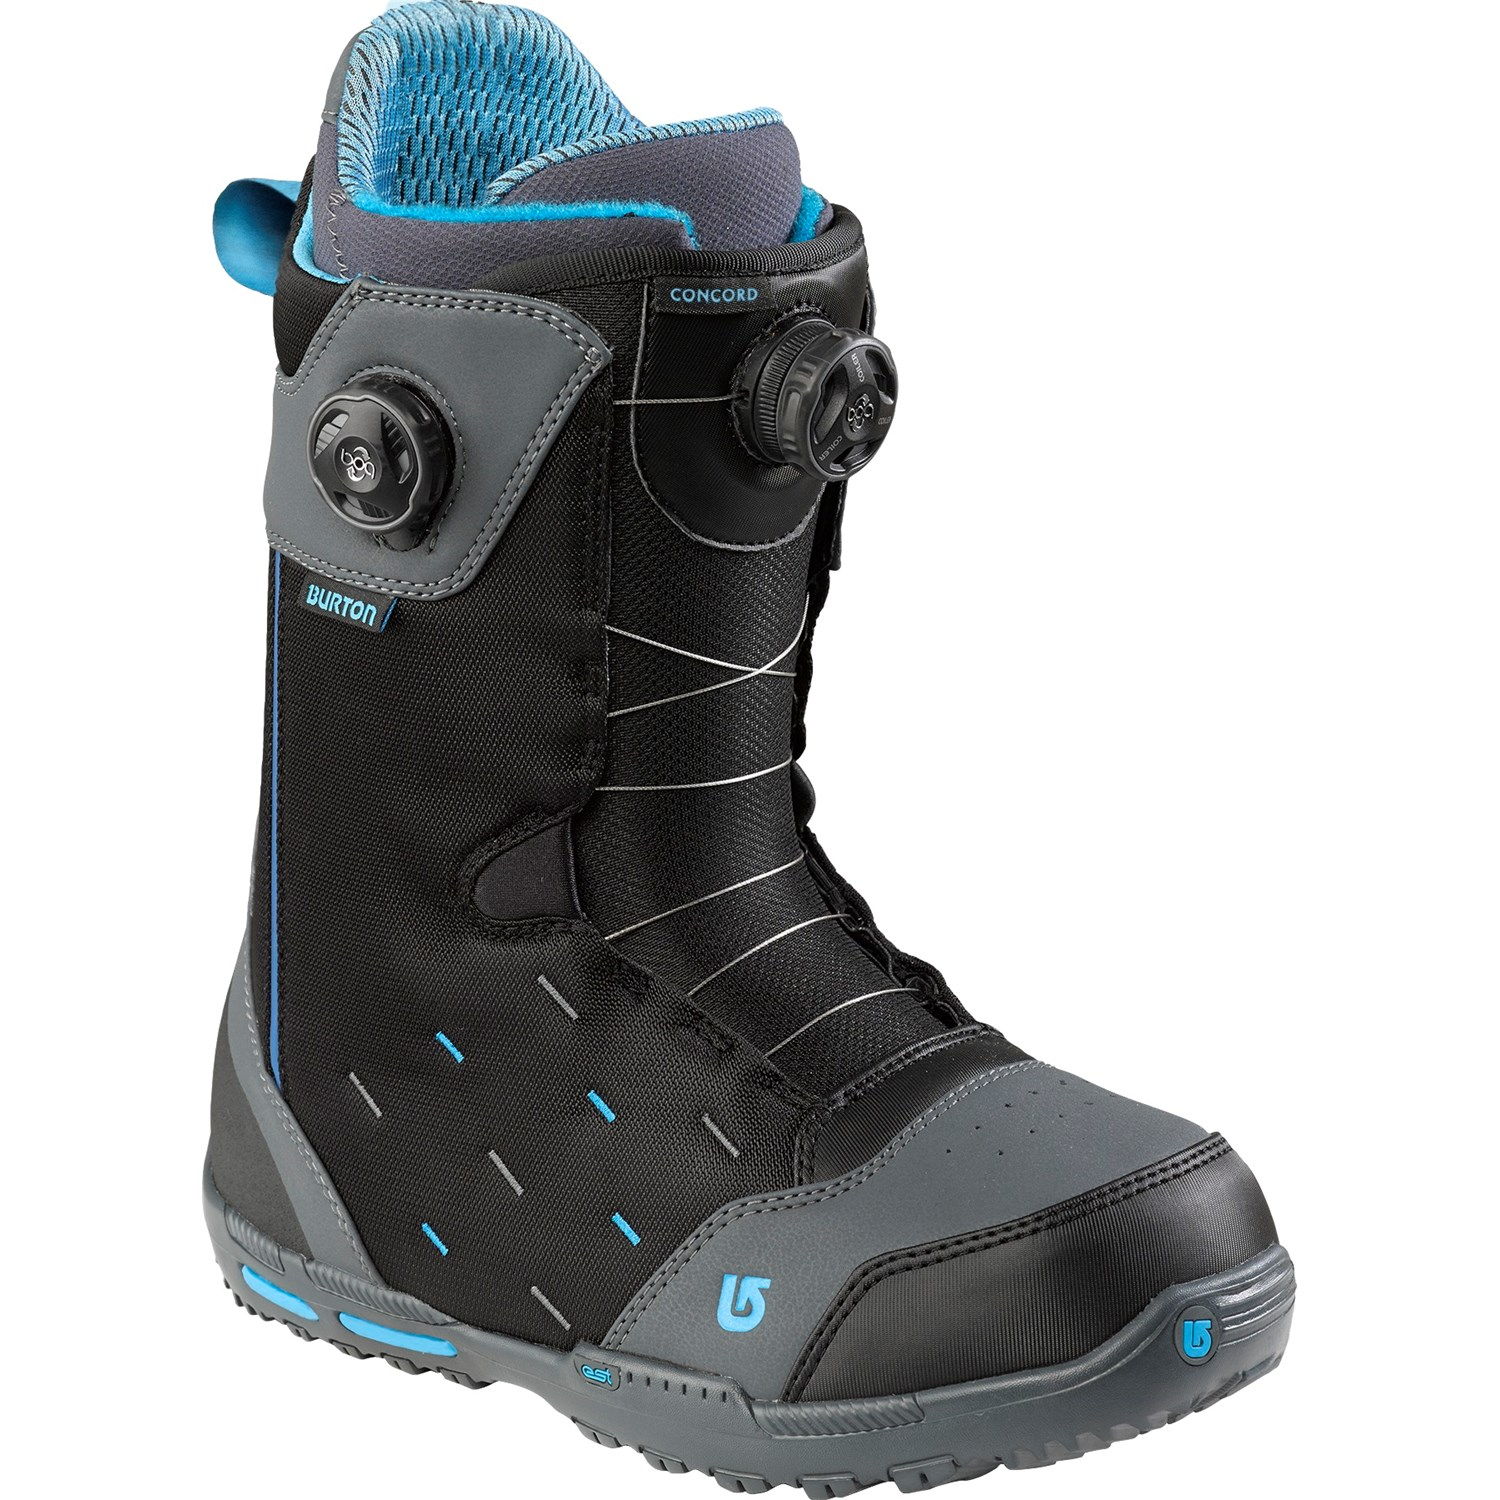 burton concord boa snowboard boots 2015 evo. Black Bedroom Furniture Sets. Home Design Ideas